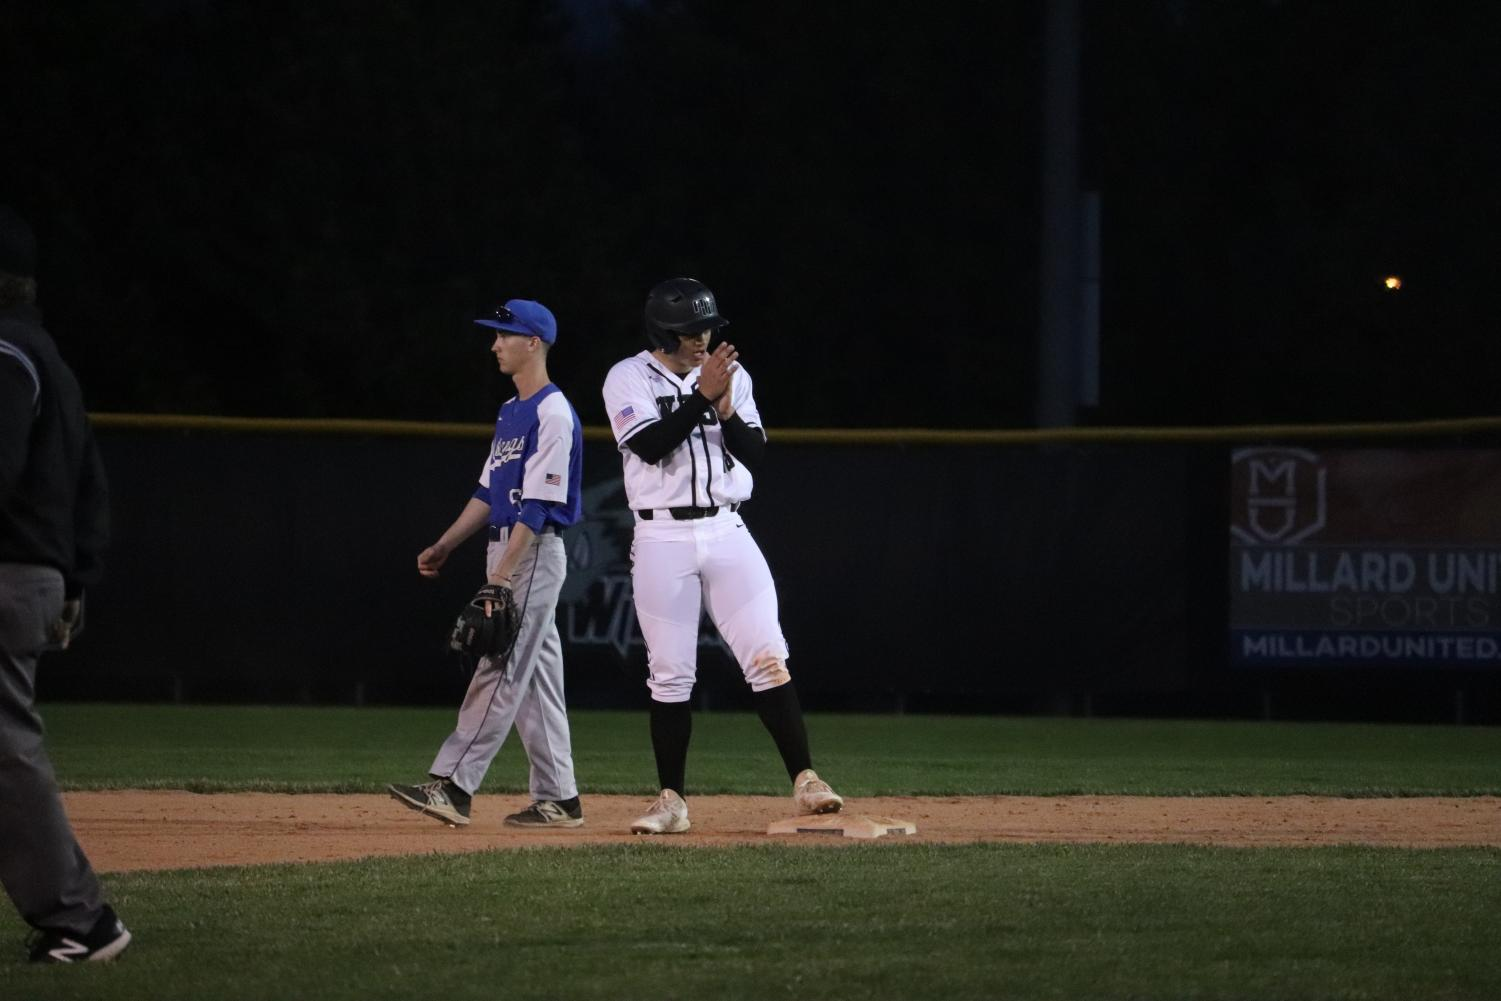 Senior+Jackson+Wright+letting+out+a+relief+as+he+stands+safe+on+second+base.+